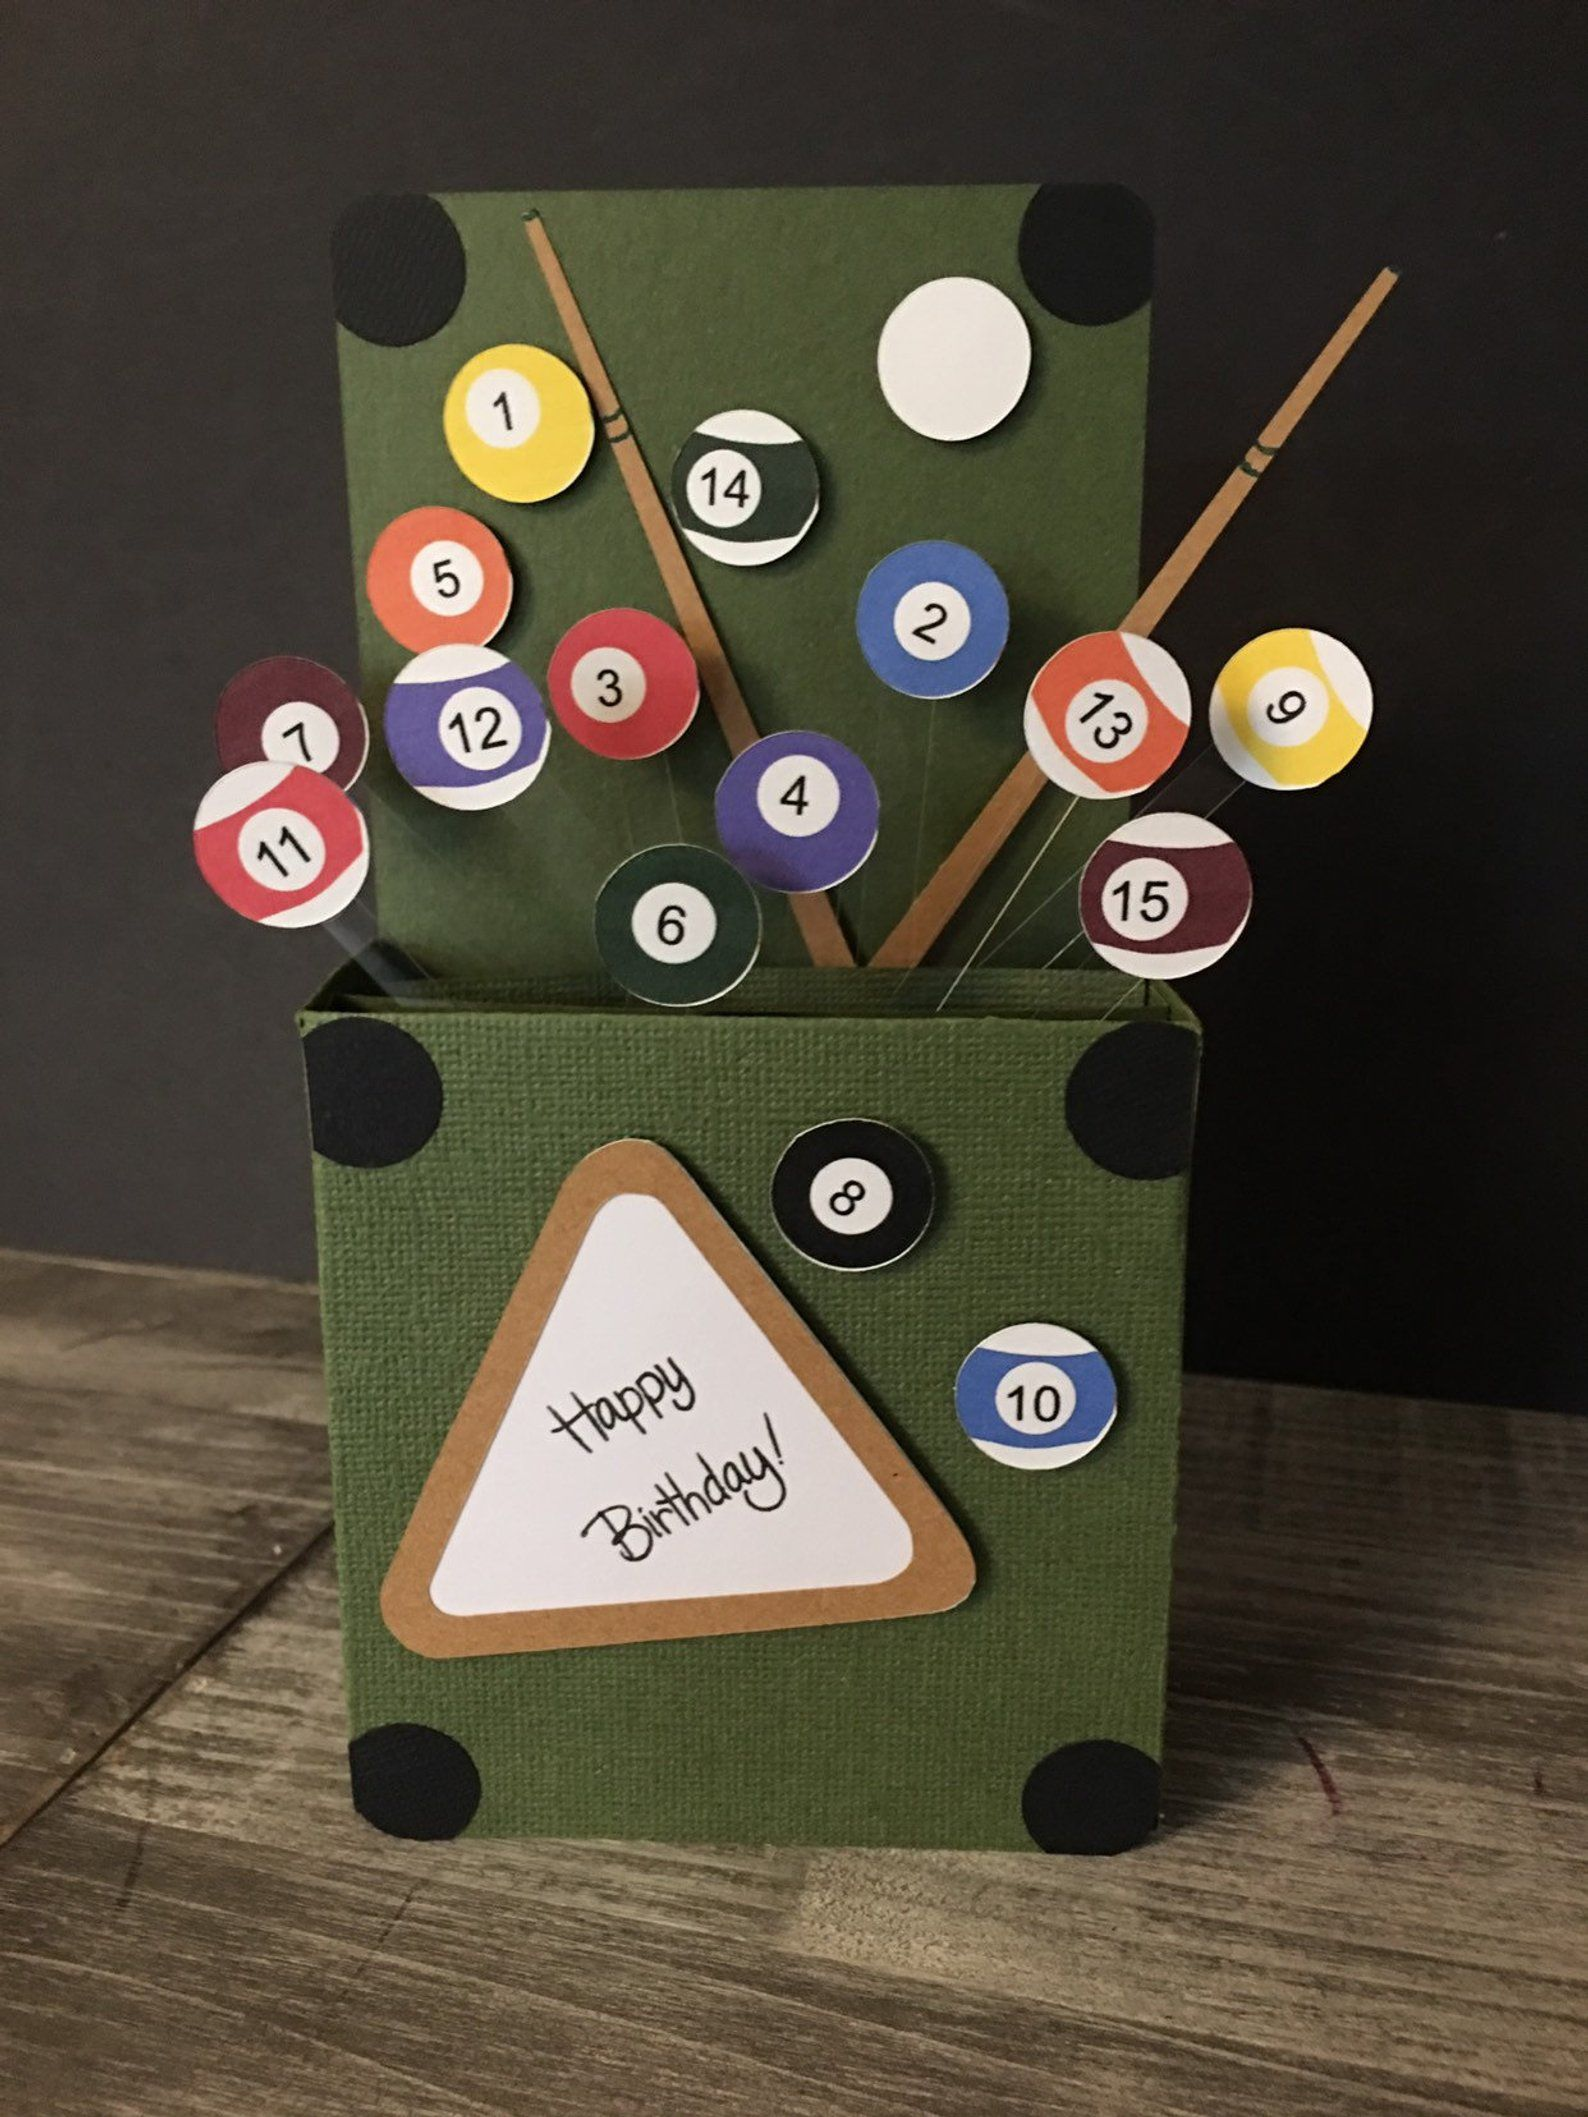 Happy birthday billiards large card in a box pool table